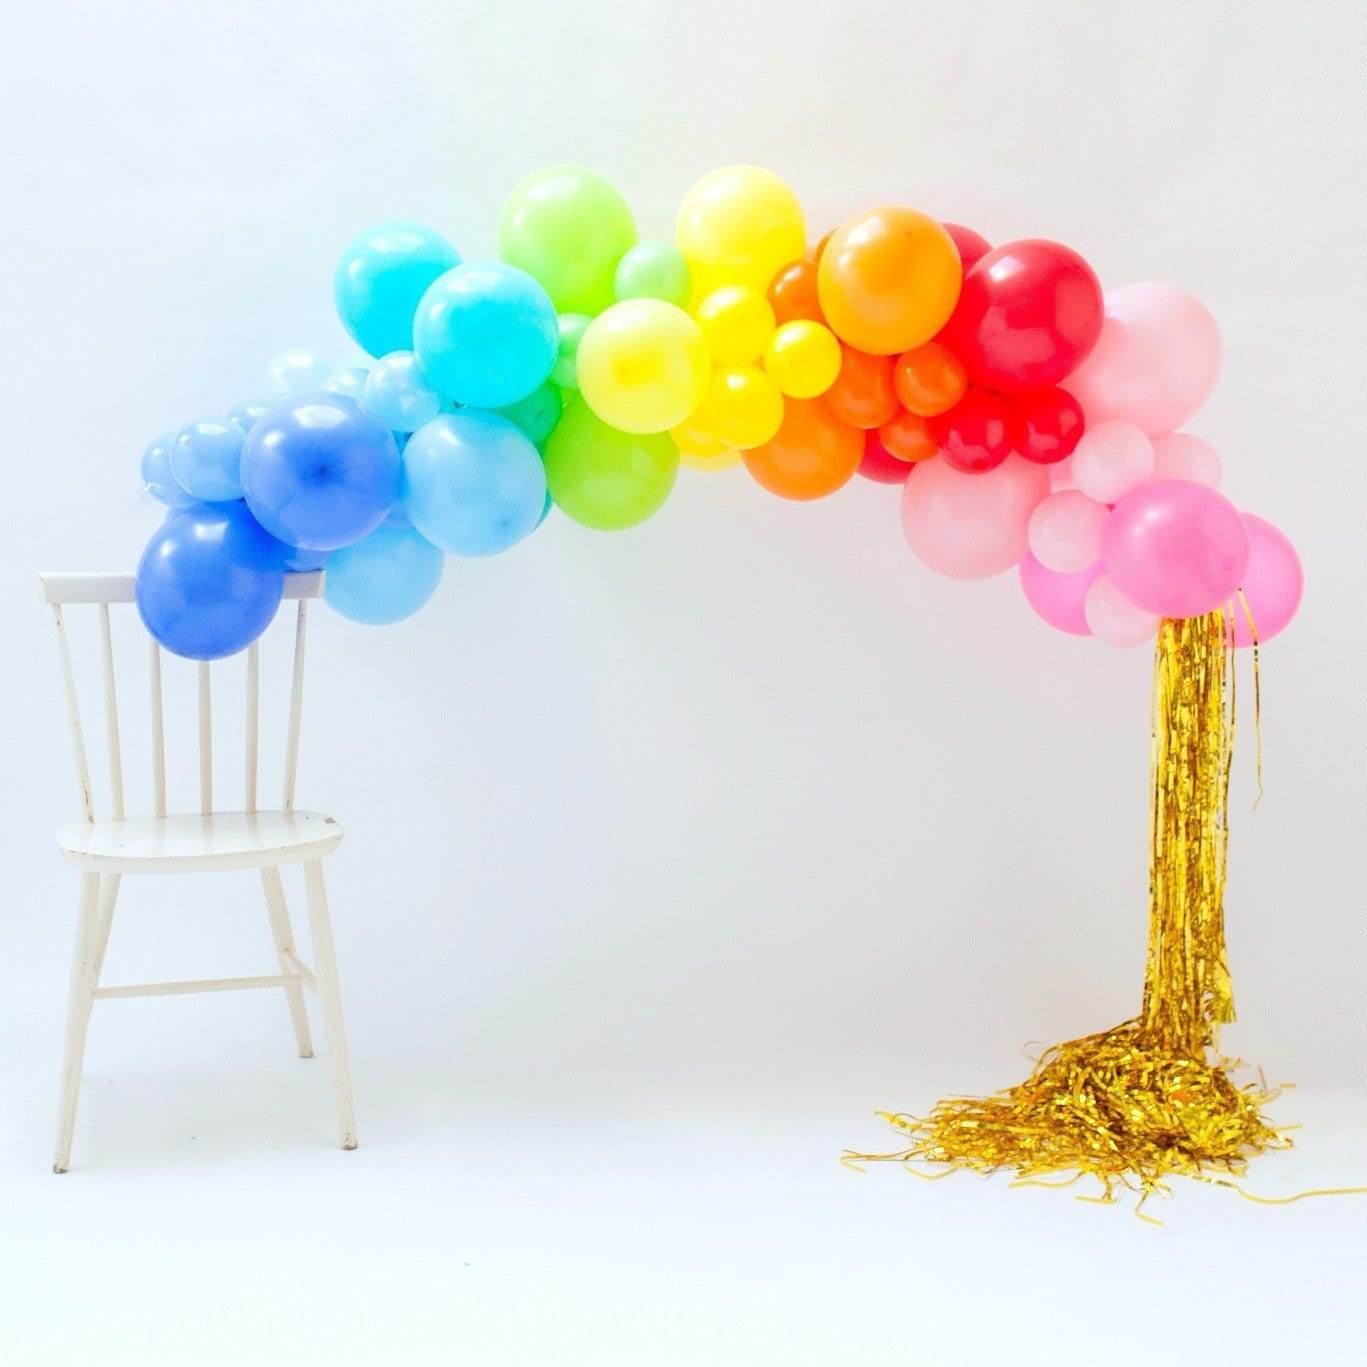 Balloon Garland Installation Kit | Balloon Garland Arch Kit